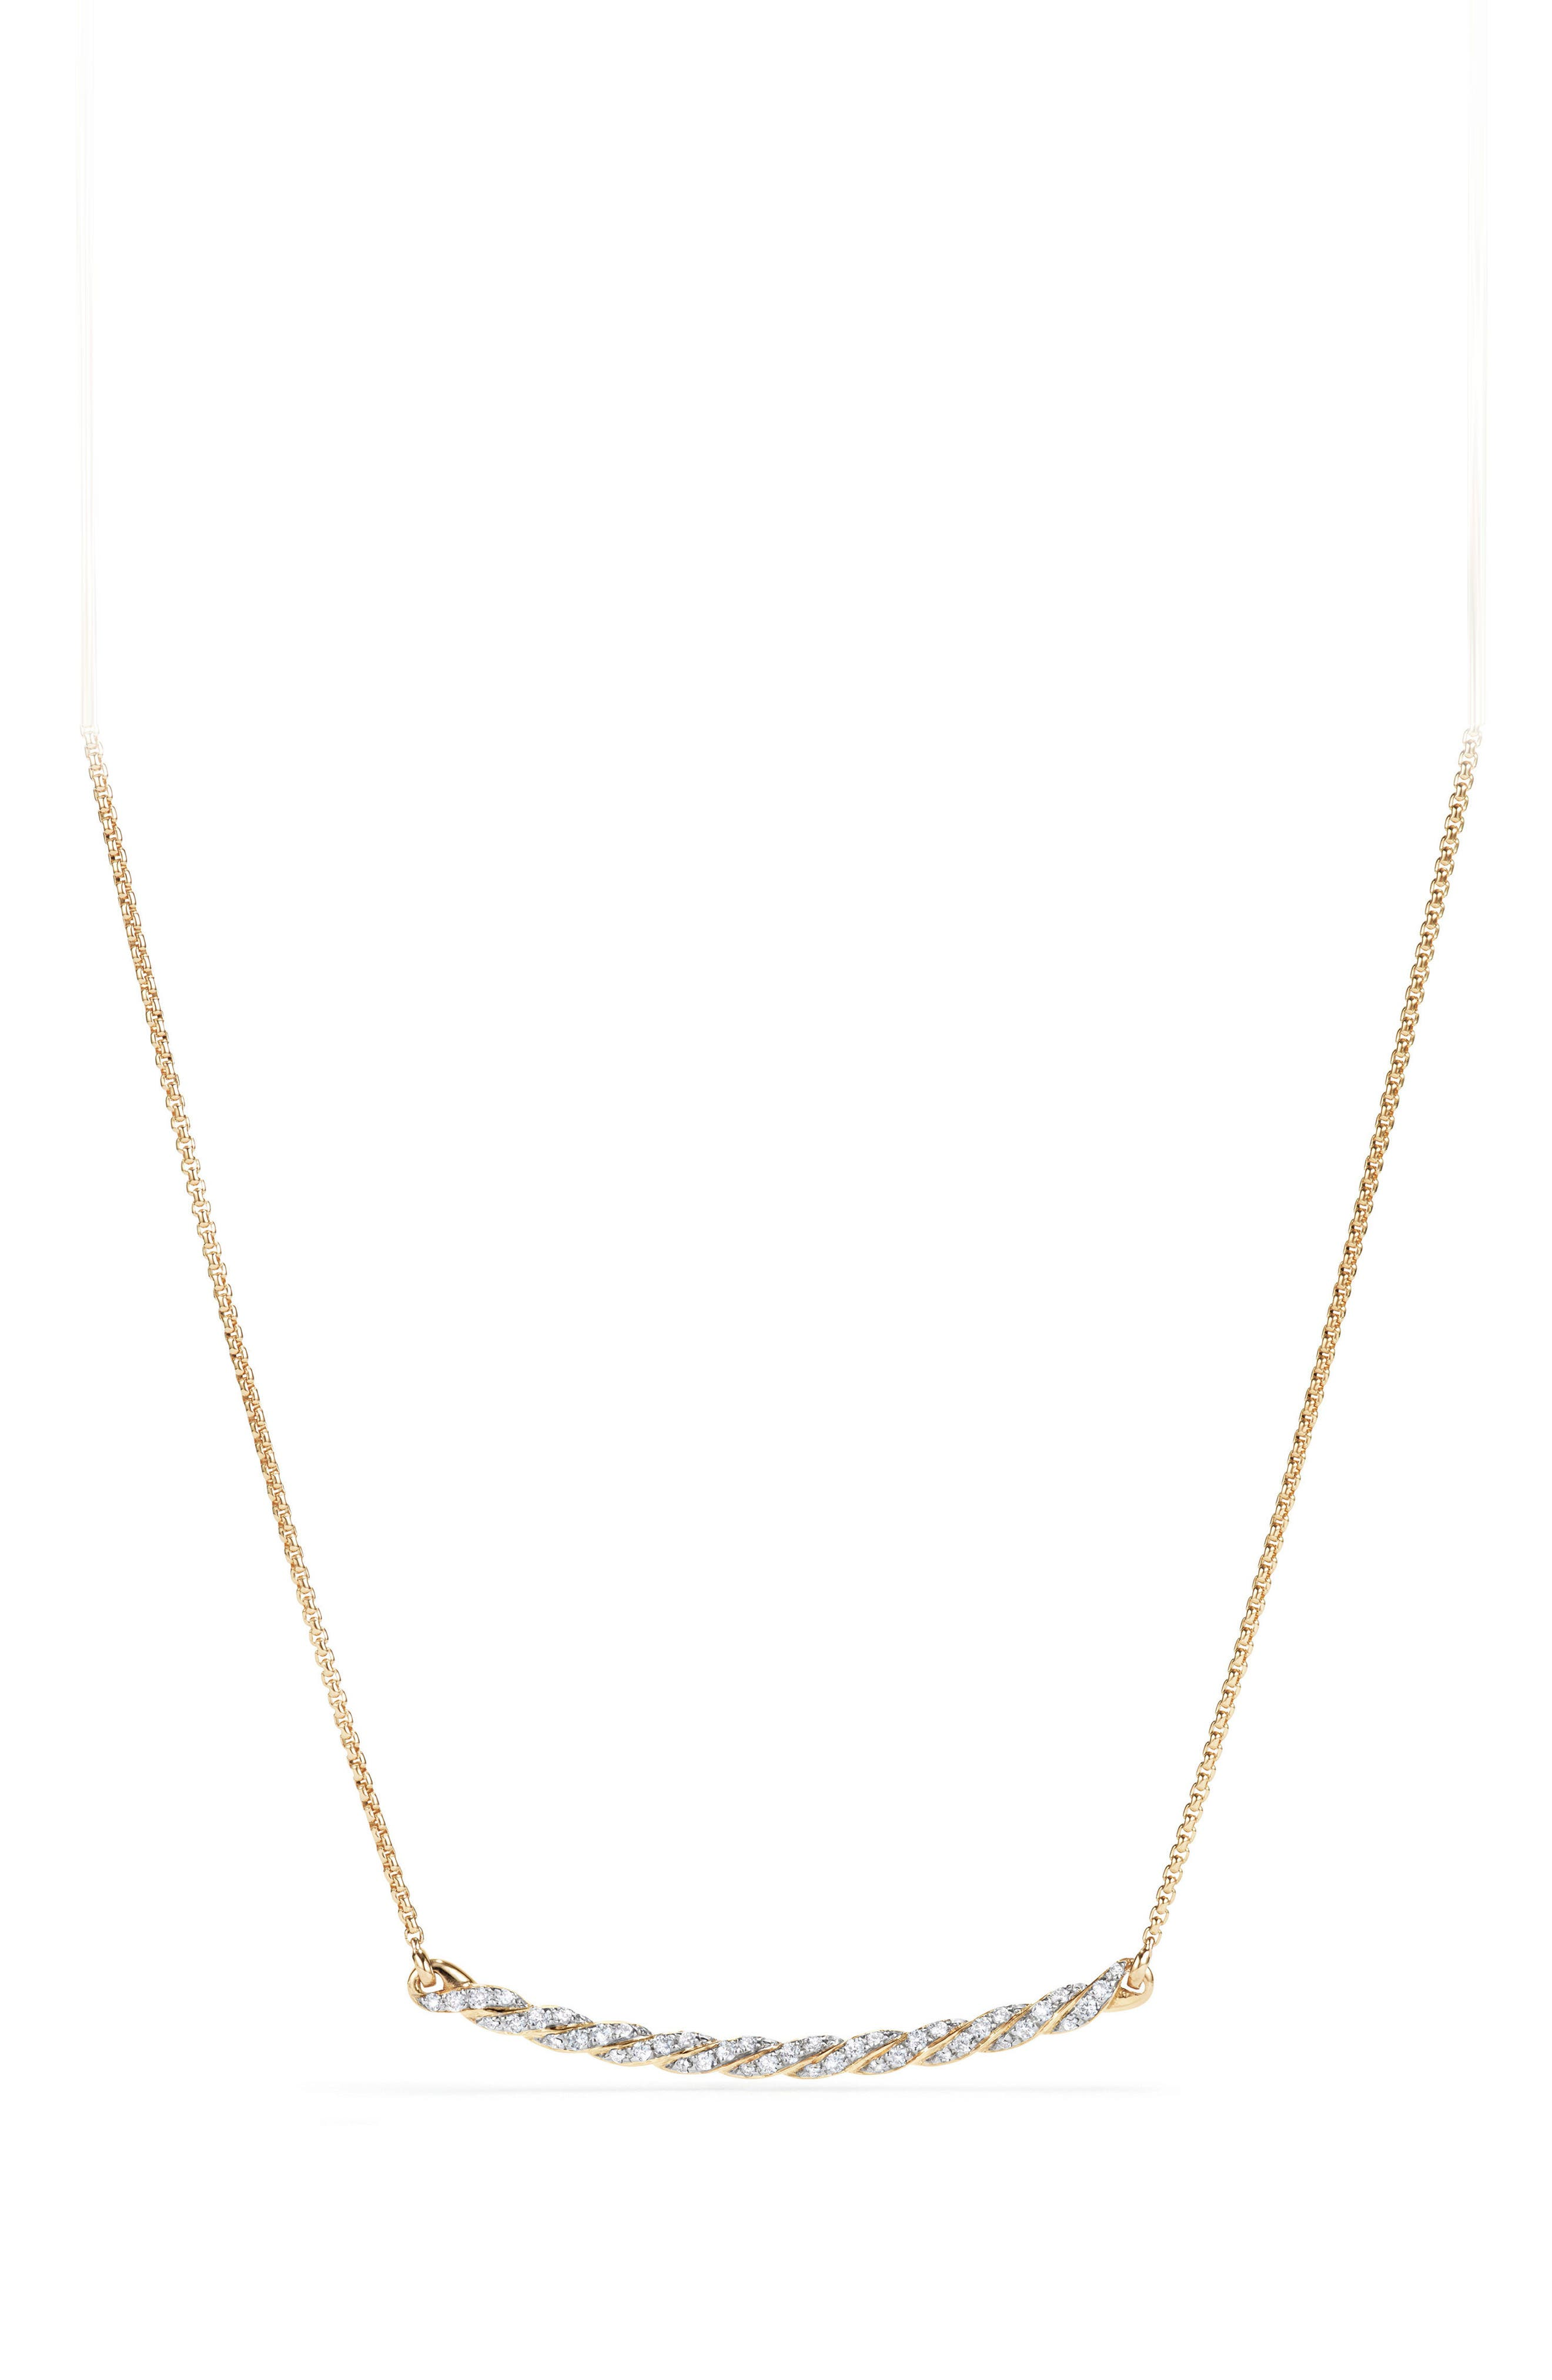 Paveflex Station Necklace with Diamonds in 18K Gold,                         Main,                         color, YELLOW GOLD/ DIAMOND